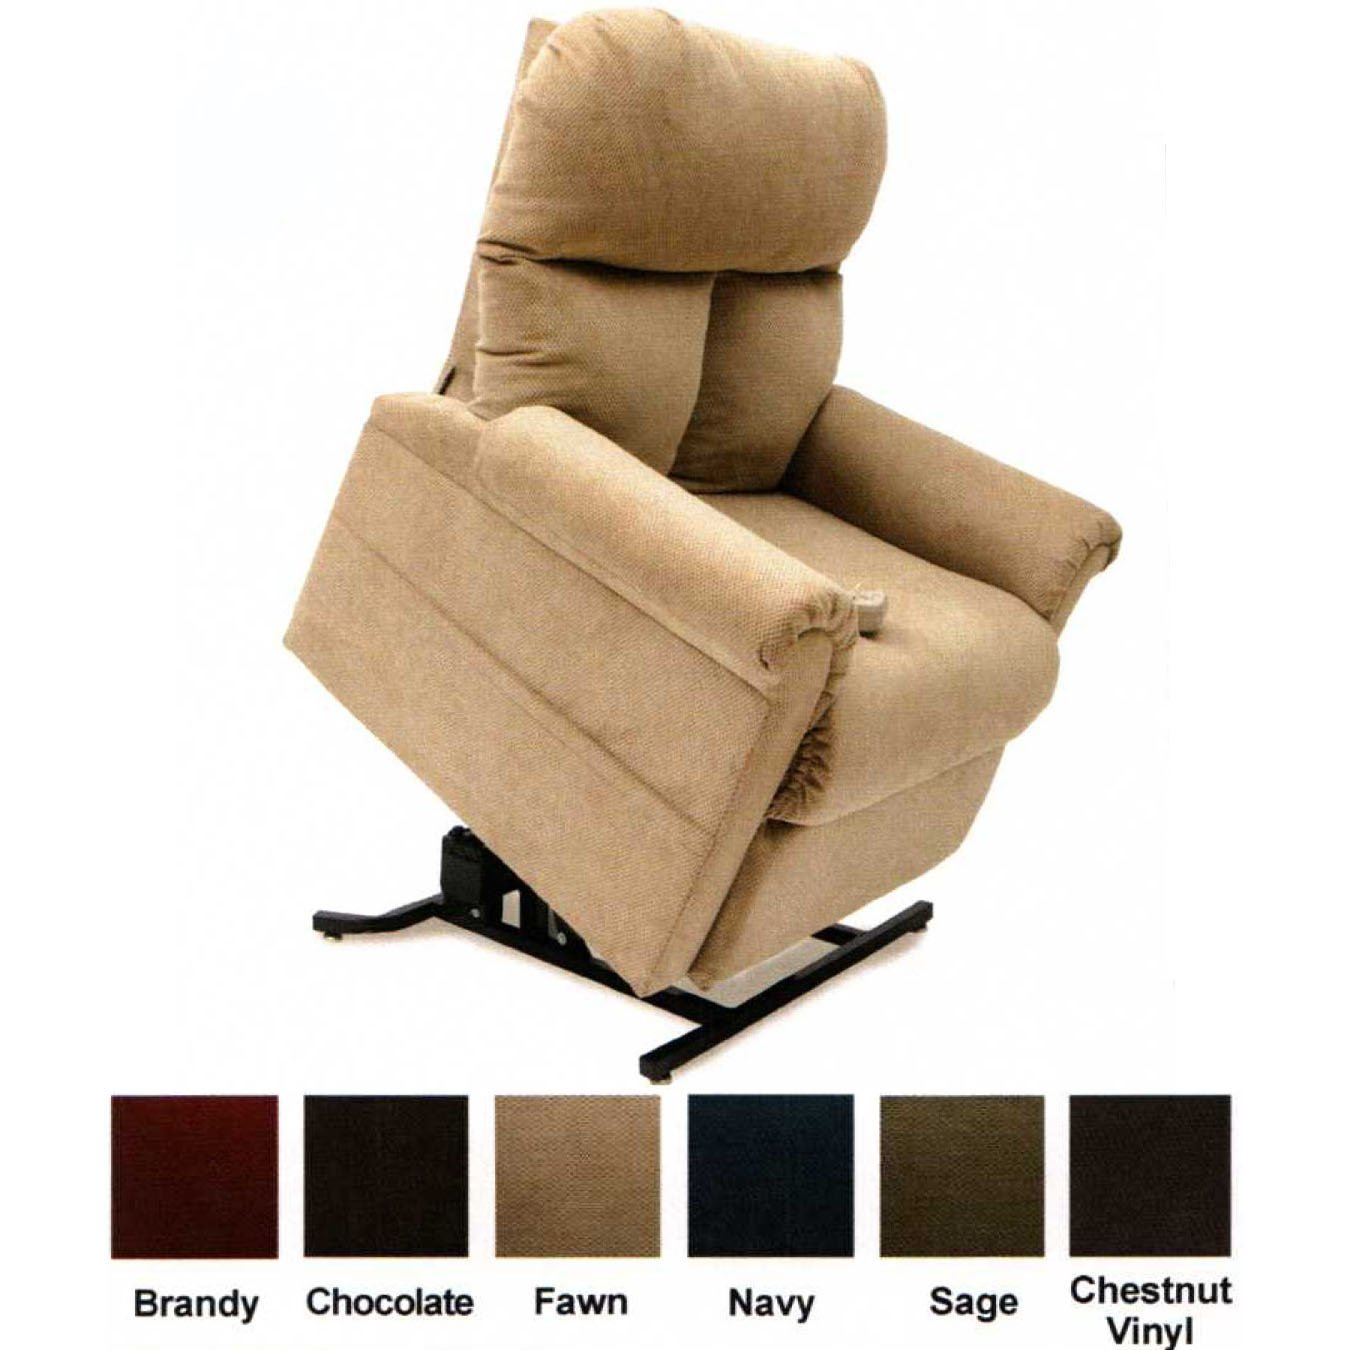 Amazon.com Easy Comfort LC-100 Infinite Position Lift Chair - Fawn Health u0026 Personal Care  sc 1 st  Amazon.com & Amazon.com: Easy Comfort LC-100 Infinite Position Lift Chair ... islam-shia.org